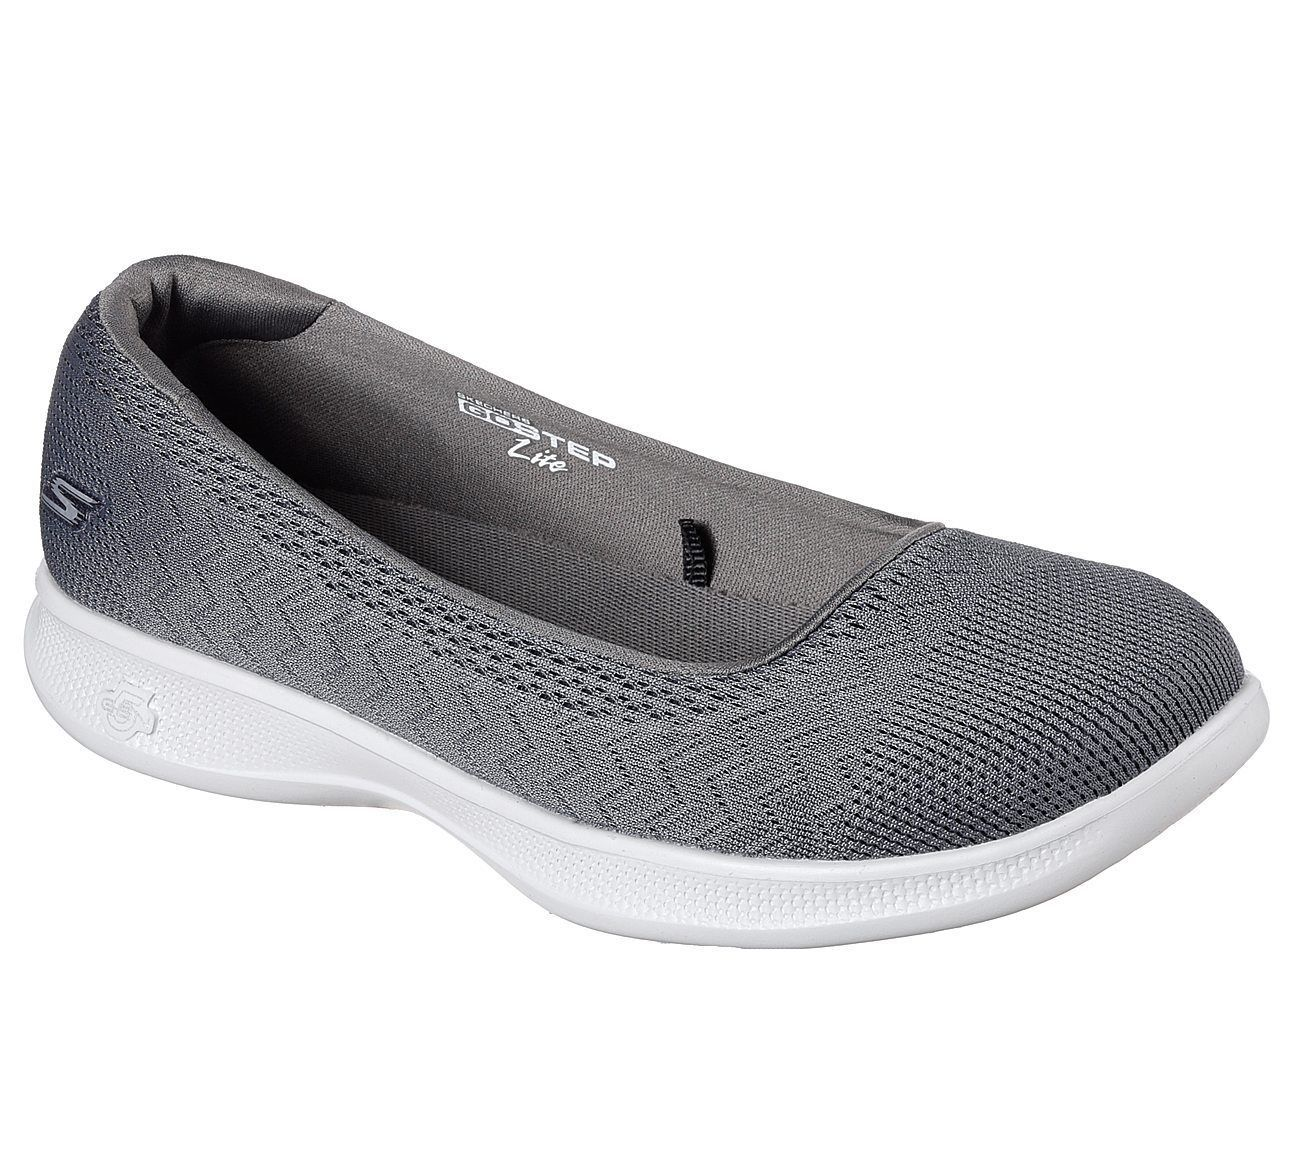 4d8c90b2a81a 14476 Charcoal Gray Skechers Shoes Go Step Lite Women Slip On Casual Sporty  Walk